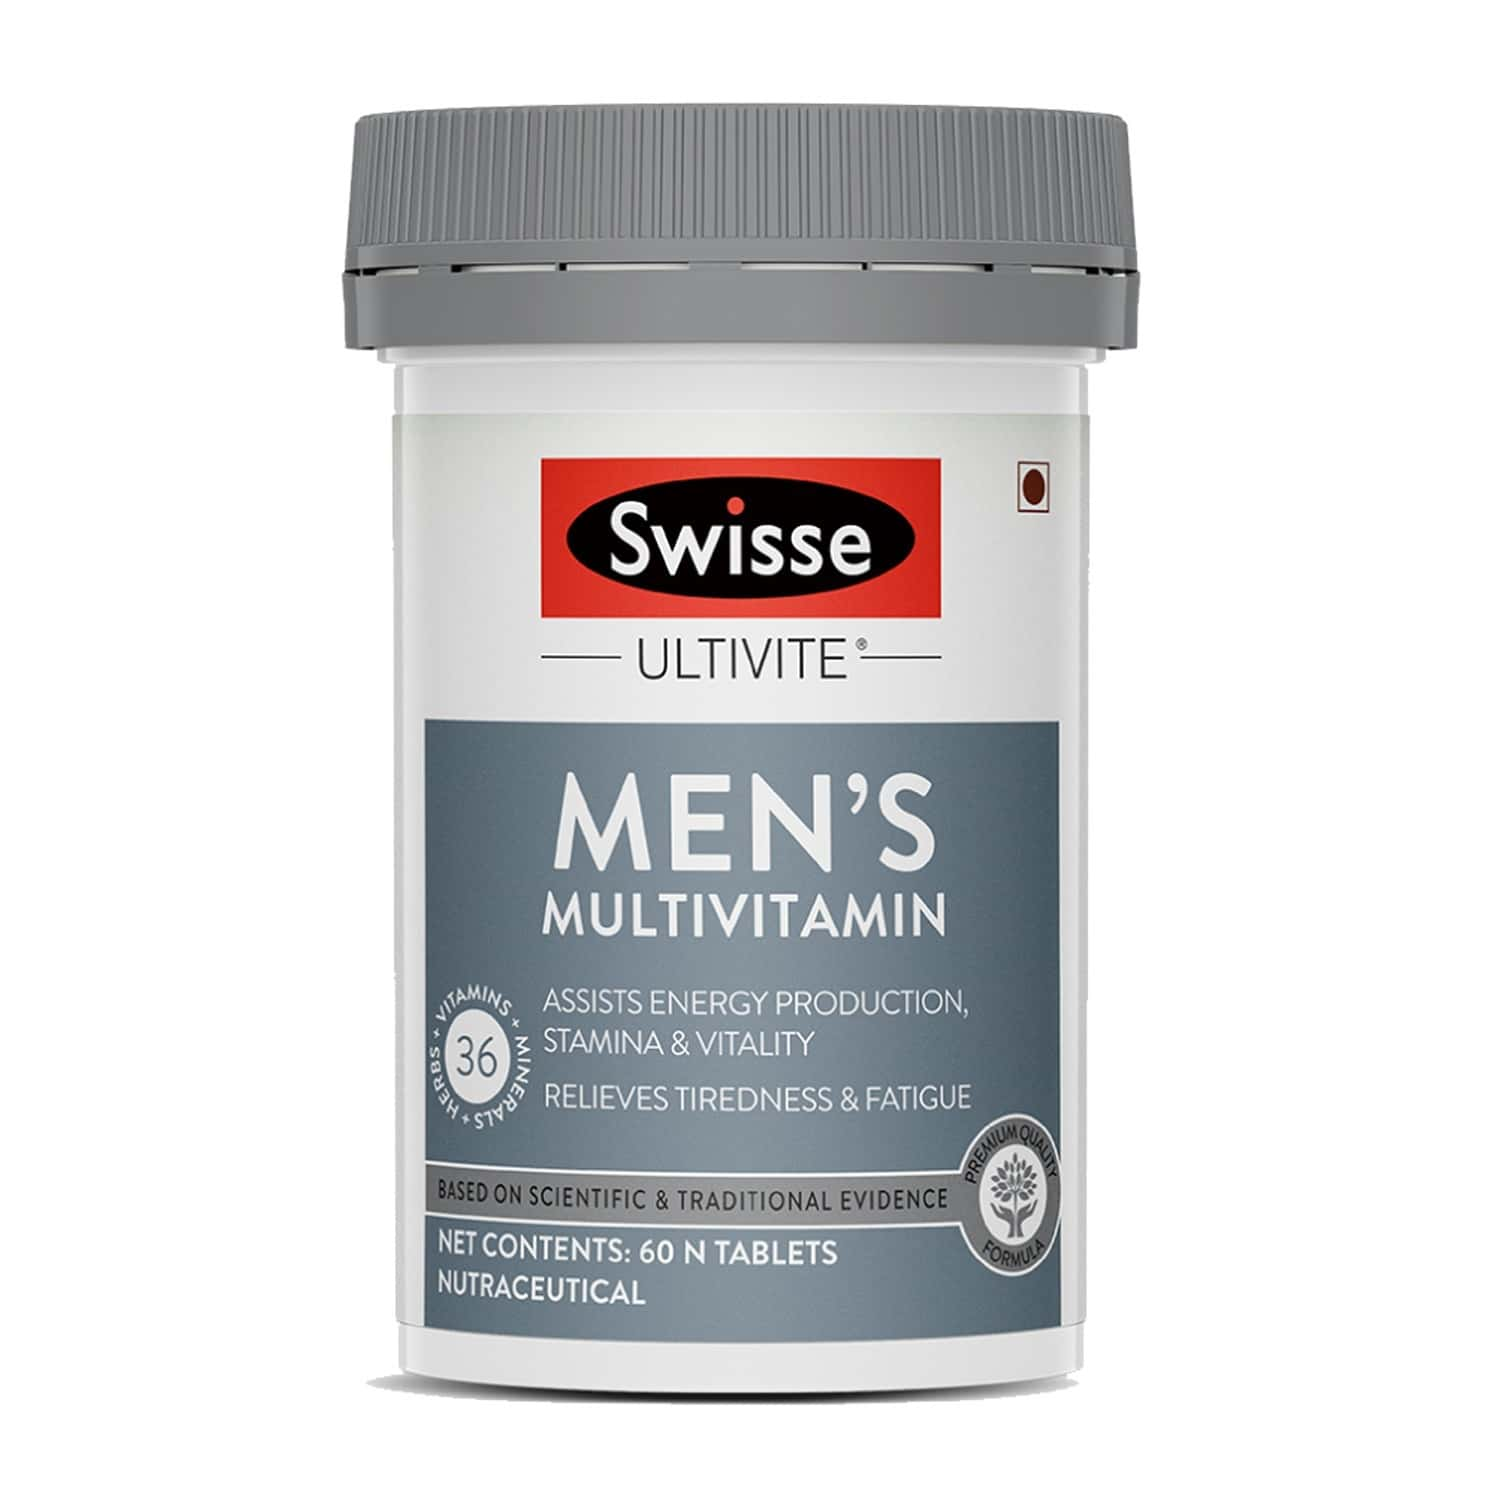 Swisse Ultivite Men's Multivitamin Supplement For Relieving Fatigue & Tiredness And Assisting Energy Stamina & Vitality Production - 60 Tablets